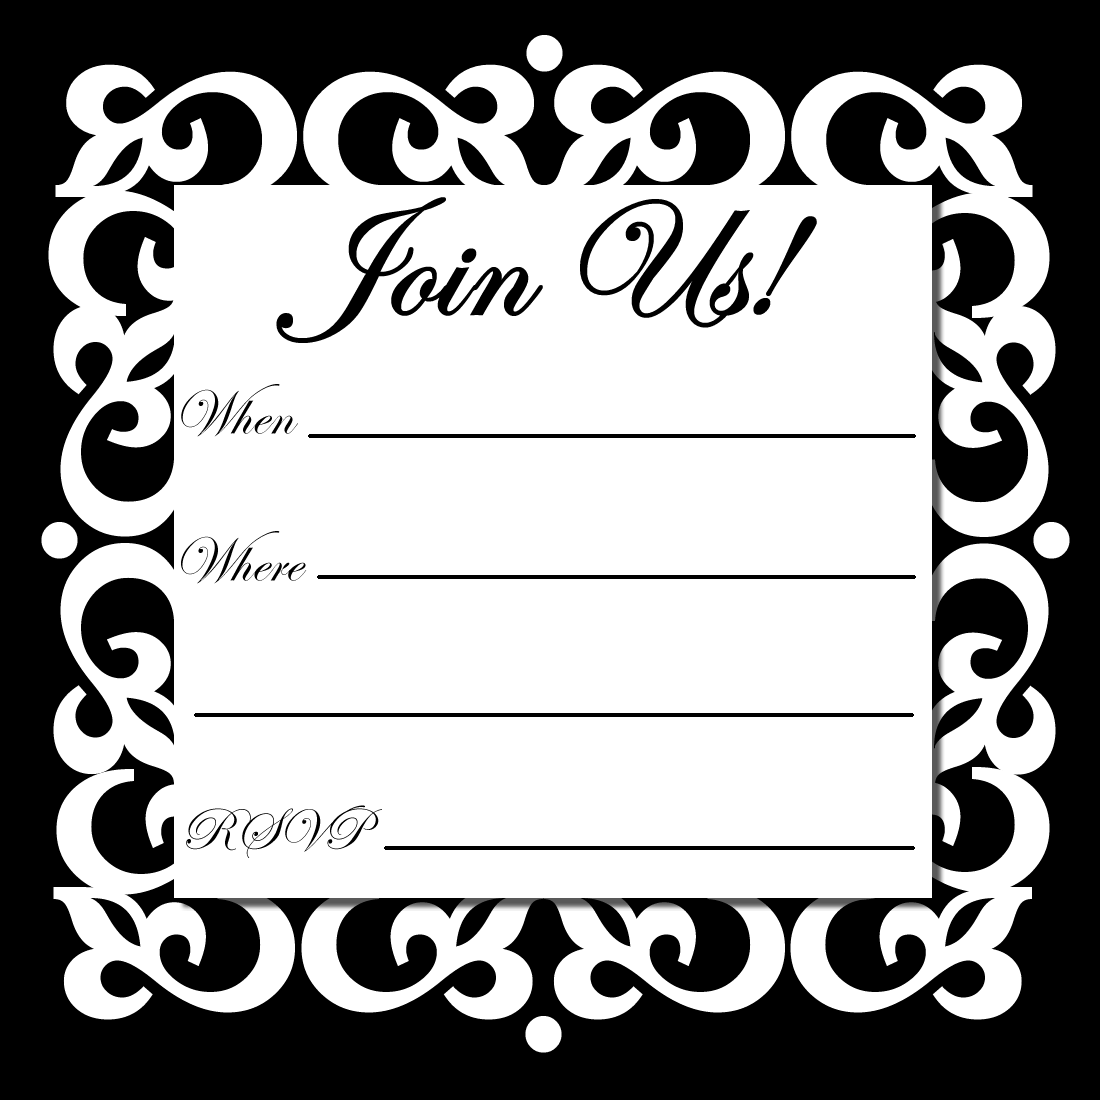 Free Online Printable Party Invitations Party Invite Template Party Invitations Printable Birthday Party Invitation Templates